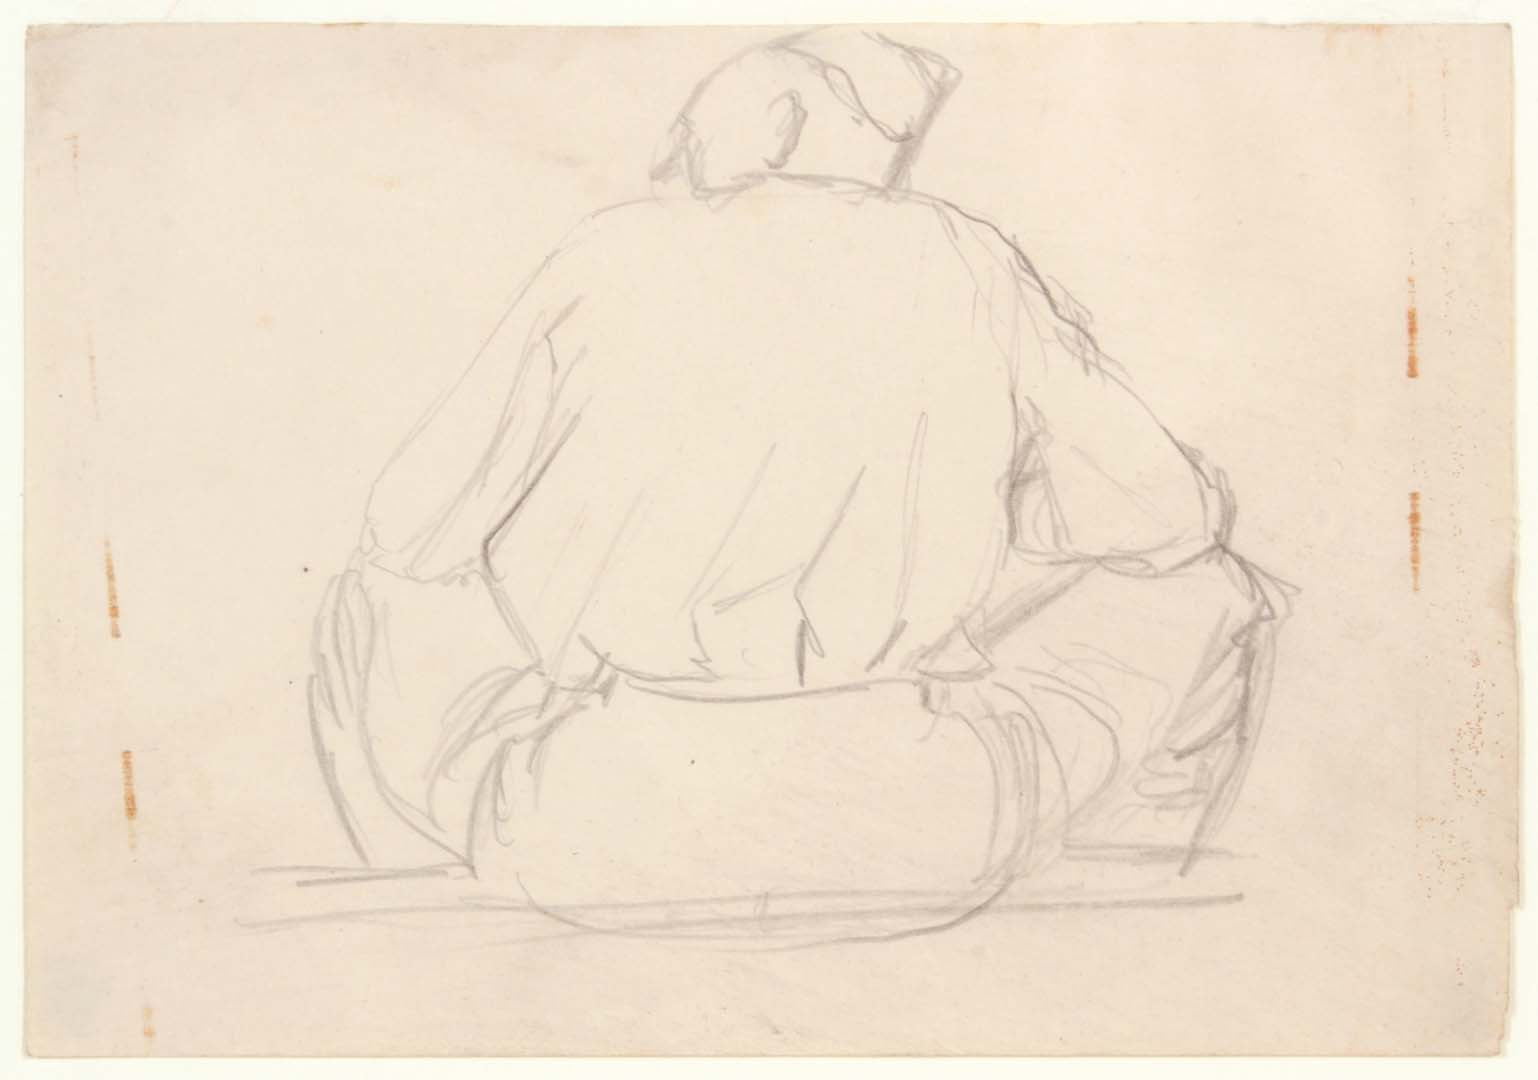 """1949 NT (Soldier Lying on His Stomach Holding Bayonette) Graphite on Paper 4.75"""" x 6.75"""""""